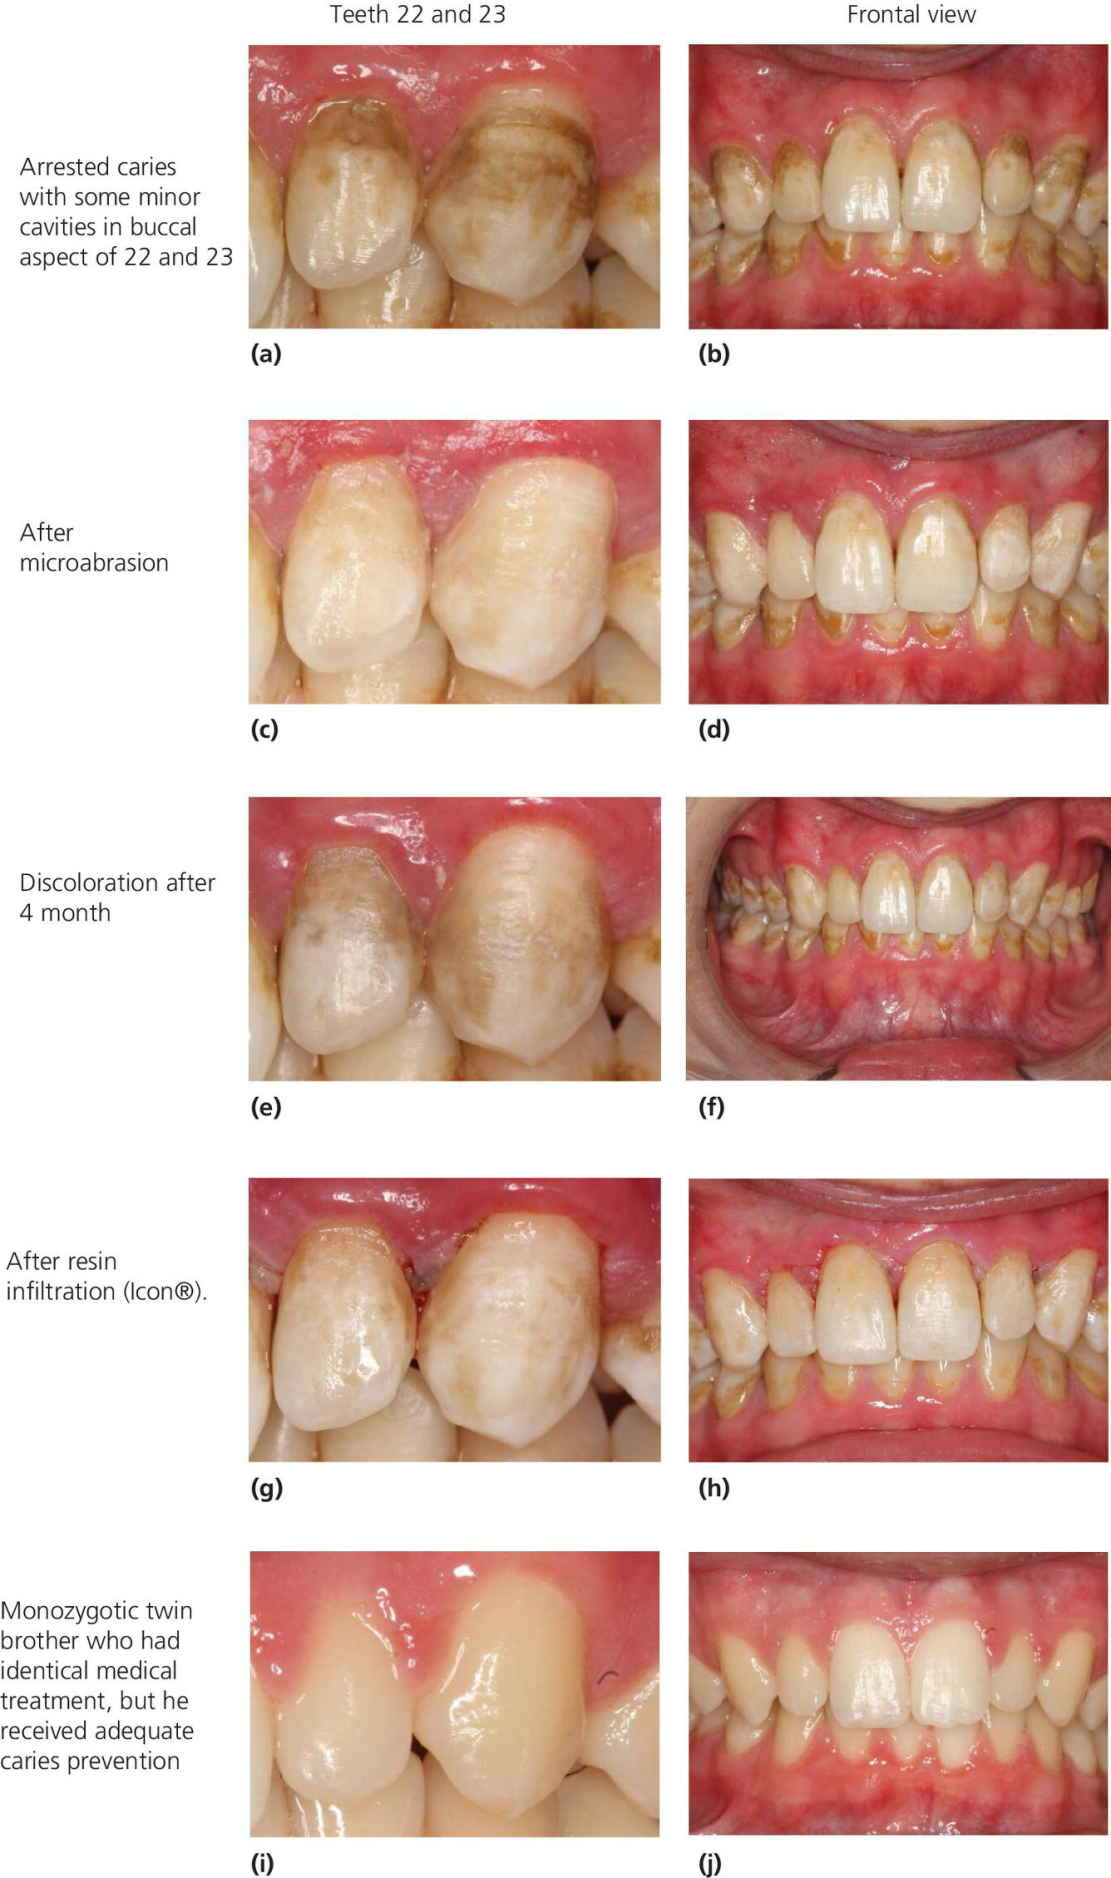 Photos of teeth 22 and 23 (left) and fontal views (right), (a,b) with caries and cavities, (c,d) after microabrasion, (e,f) discoloration after 4 month, (g,h) after resin infiltration, (i,j) and of the twin brother.